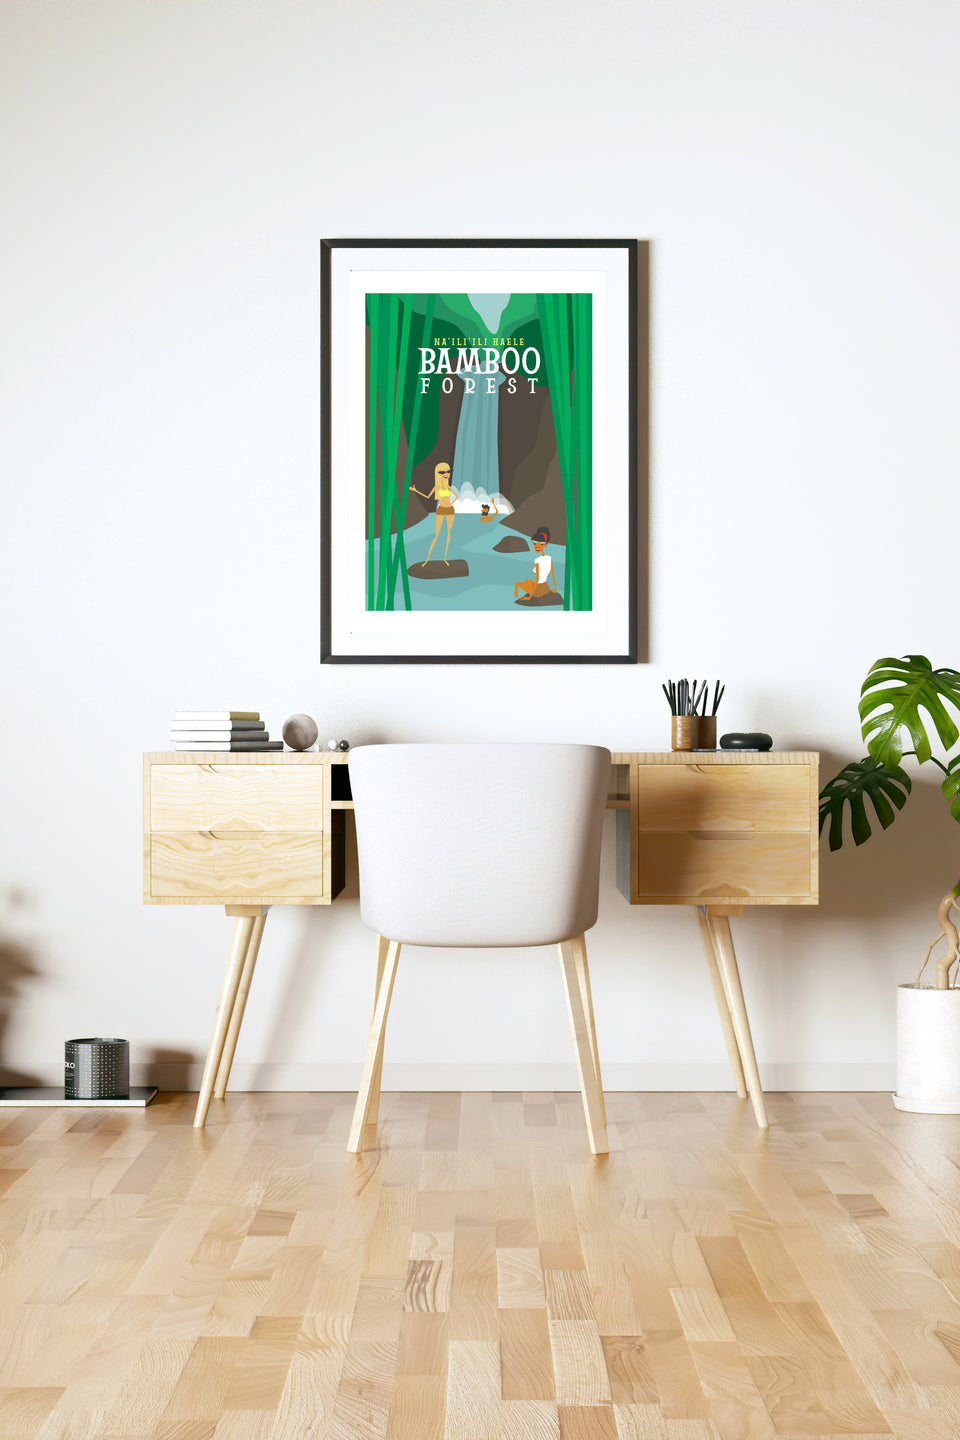 Bamboo Forest (Retro Hawai'i Travel Poster)